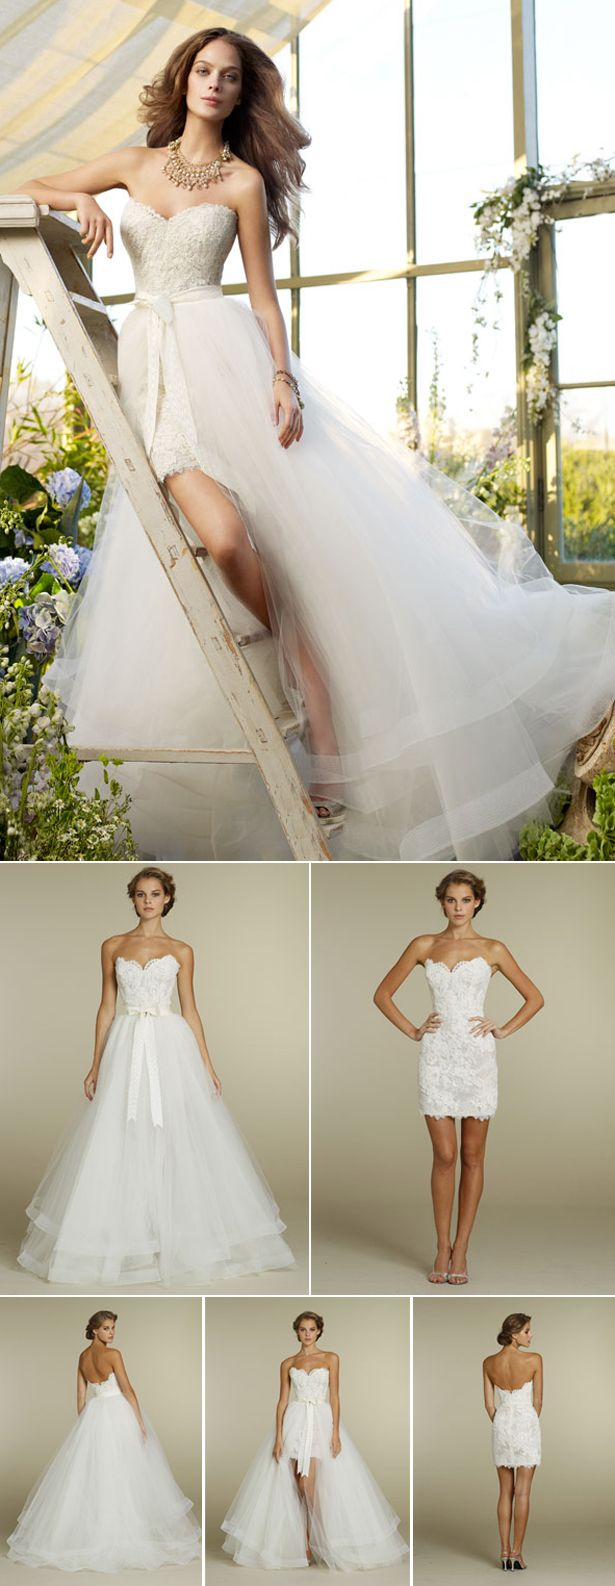 Convertible Two in One Wedding Dresses | Confetti, Convertible and ...